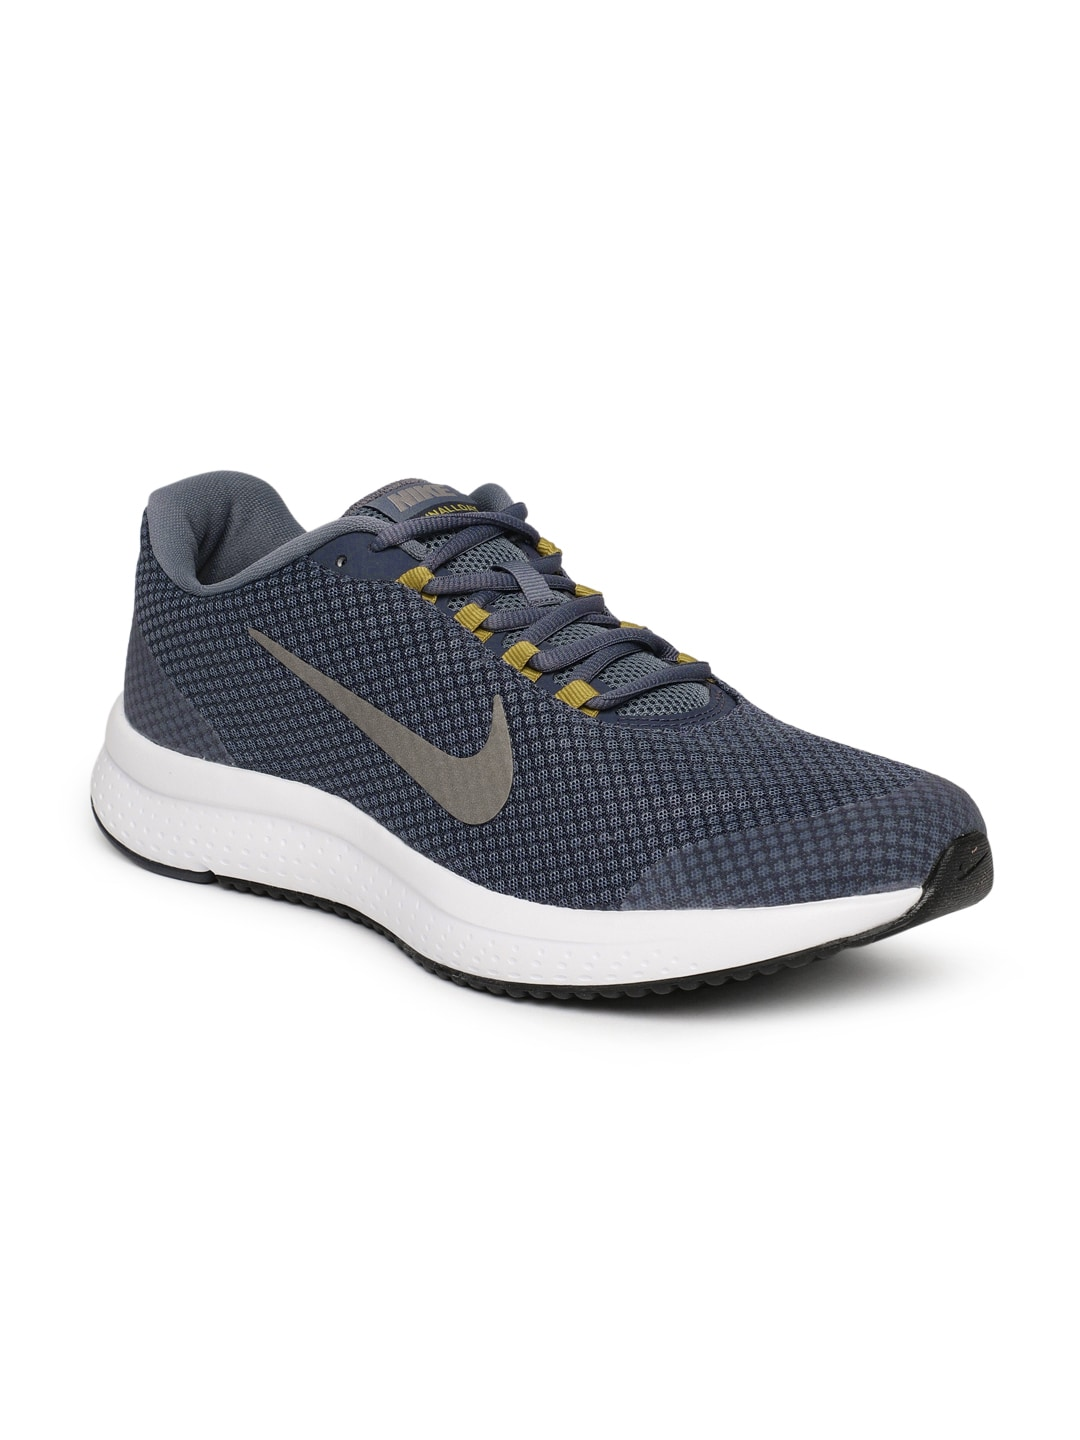 815659e14869 Nike Shoes - Buy Nike Shoes for Men